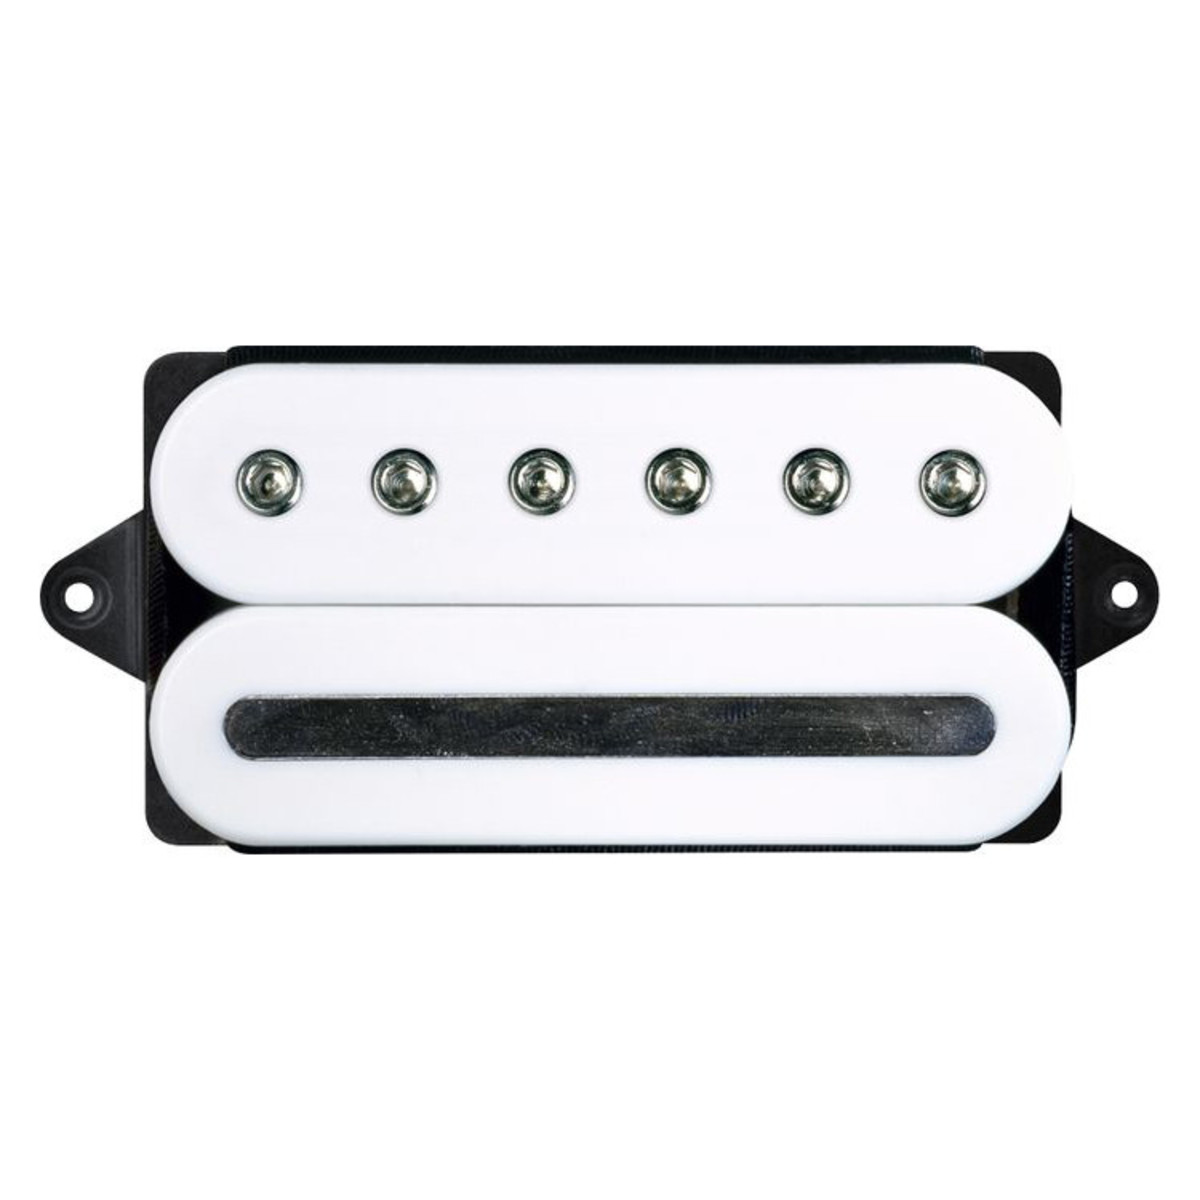 dimarzio dp228 crunch lab f spaced humbucker guitar pickup white at gear4music. Black Bedroom Furniture Sets. Home Design Ideas